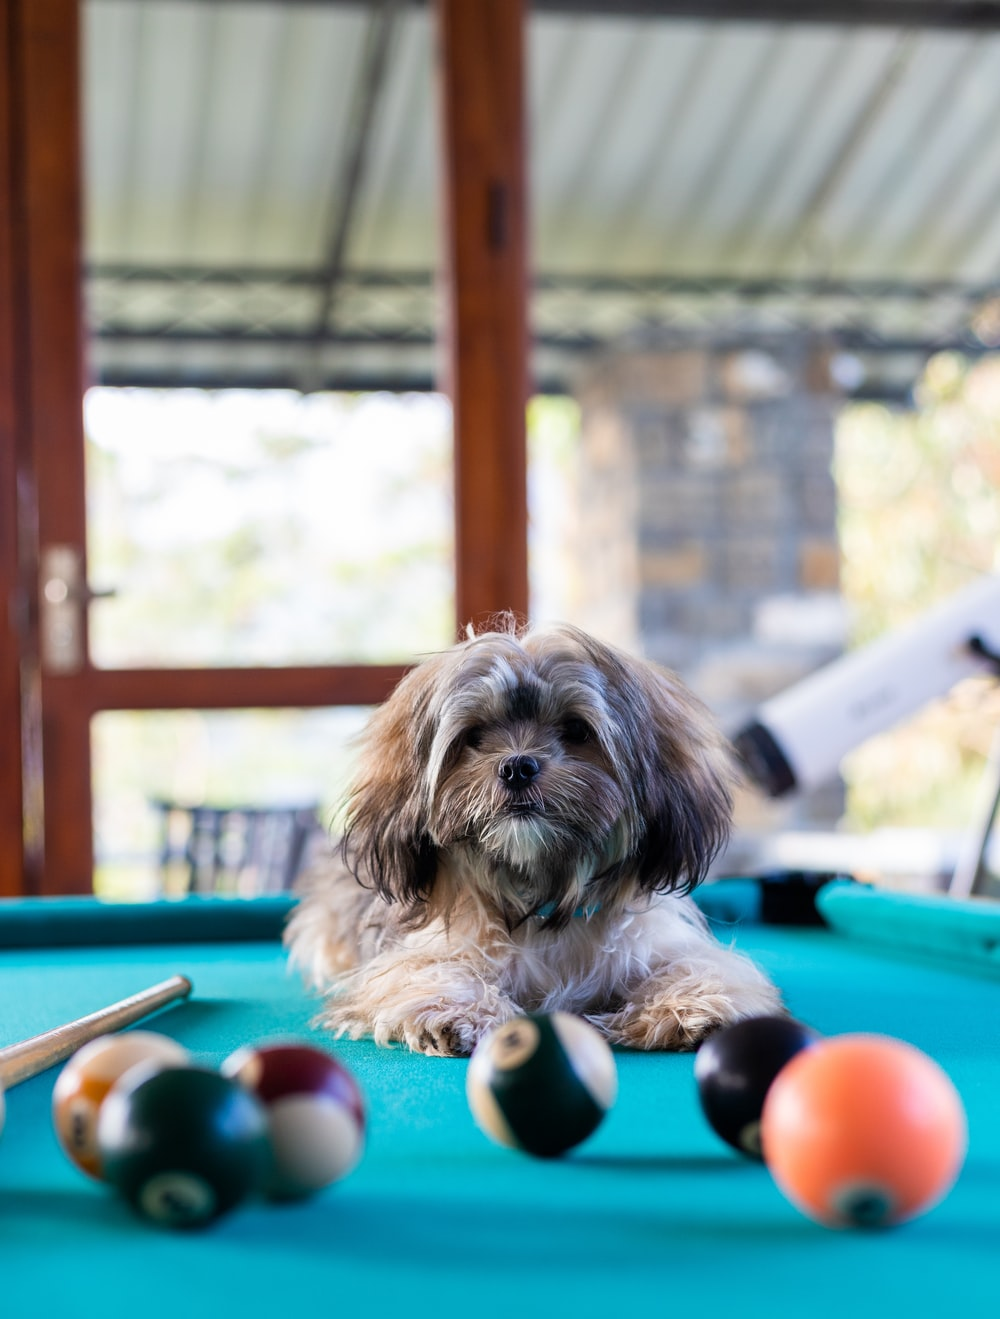 brown dog on pool table